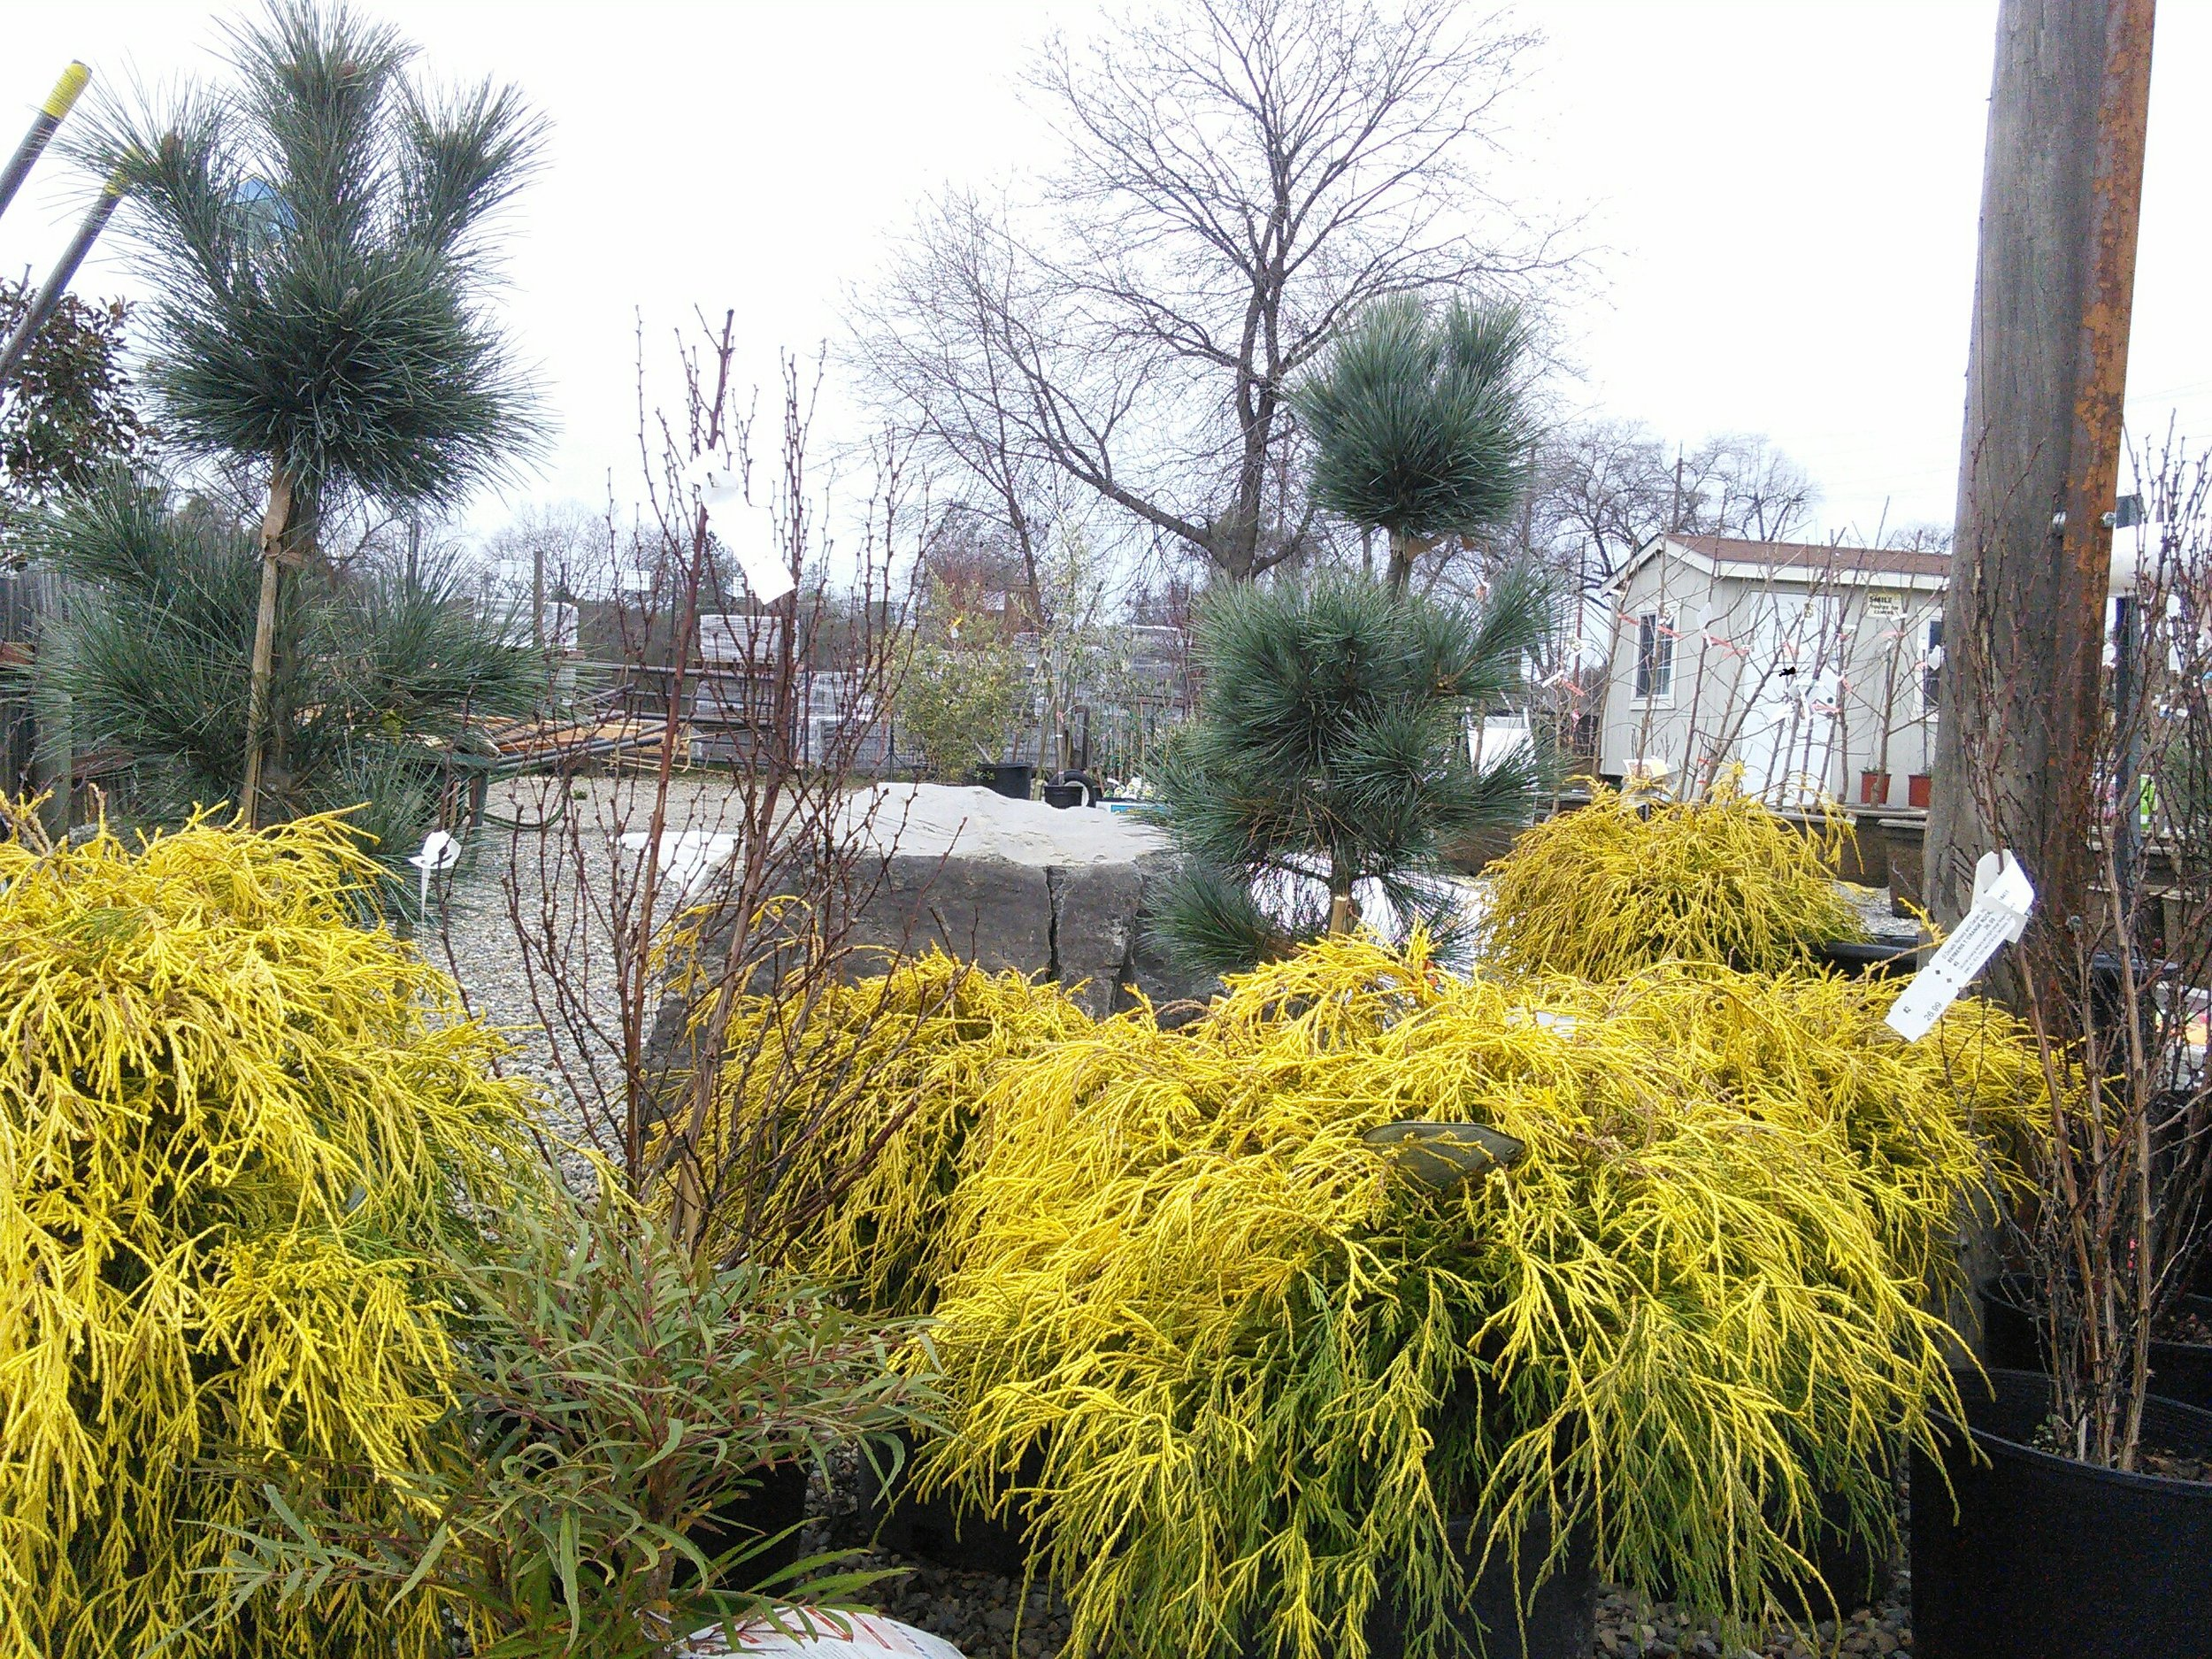 Pinus strobus x flexilis 'Domingo' with Chamaecyparis pisifera 'Golden Mop'